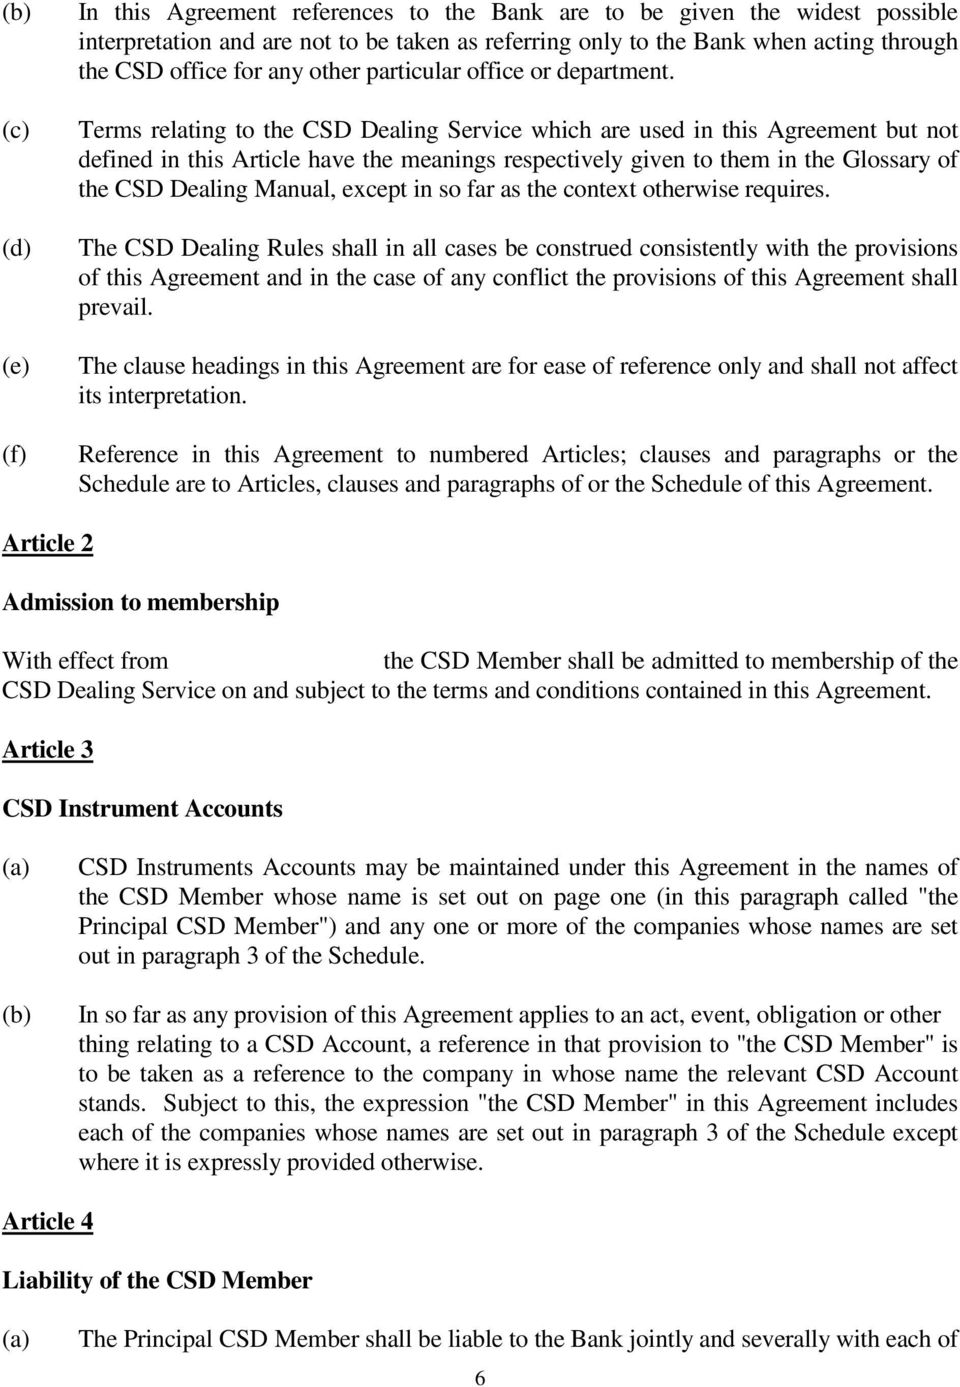 Terms relating to the CSD Dealing Service which are used in this Agreement but not defined in this Article have the meanings respectively given to them in the Glossary of the CSD Dealing Manual,